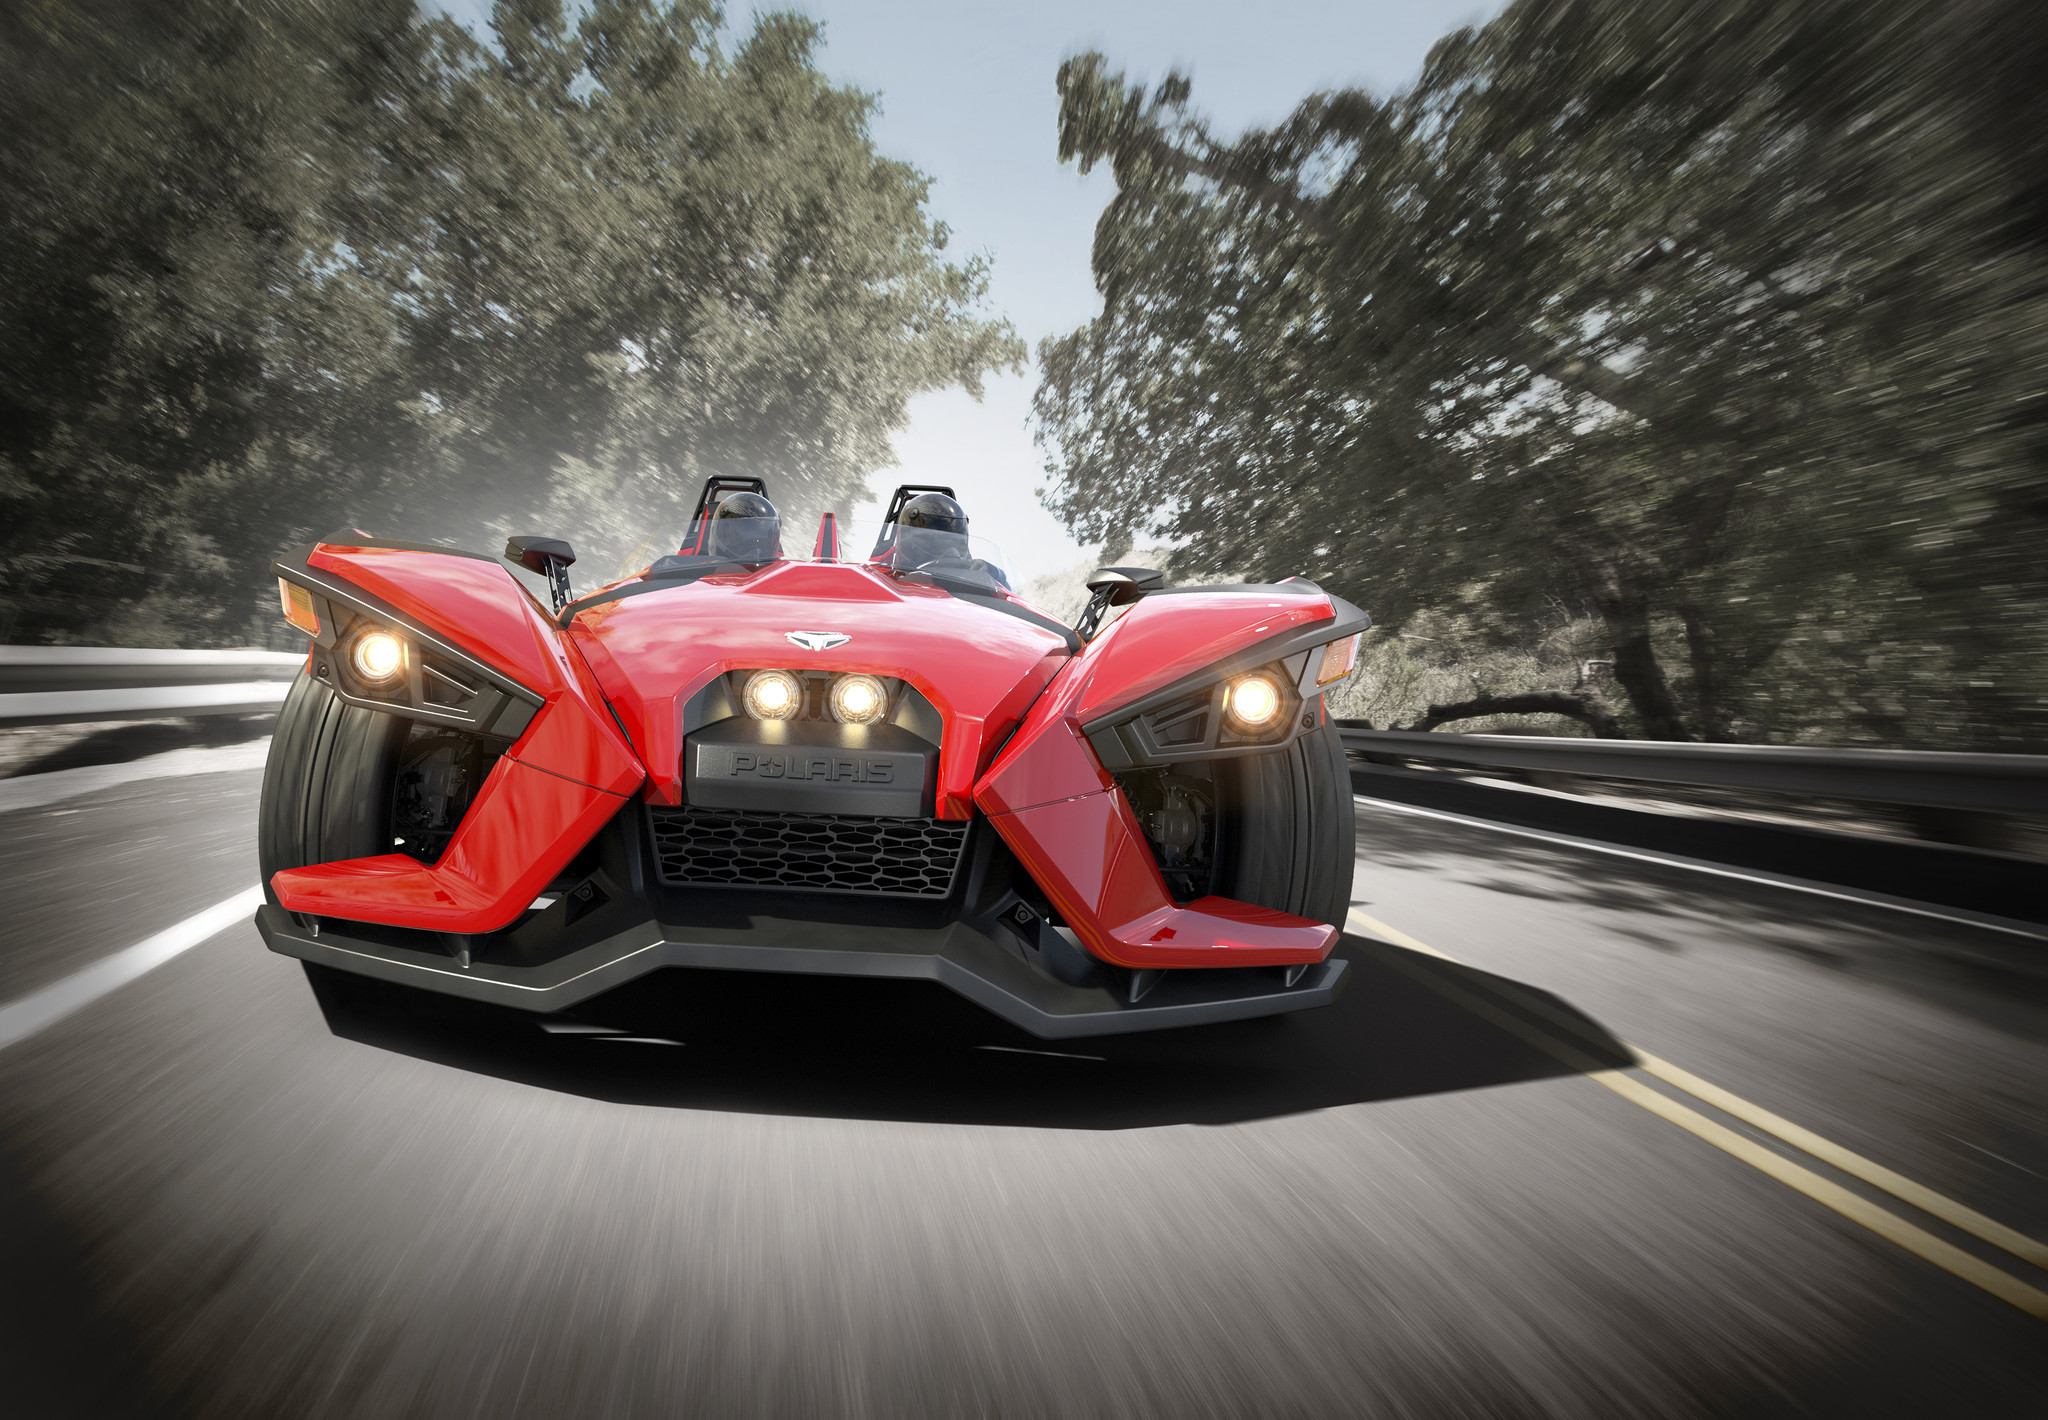 Polaris Slingshot three-wheeled roadster debuts